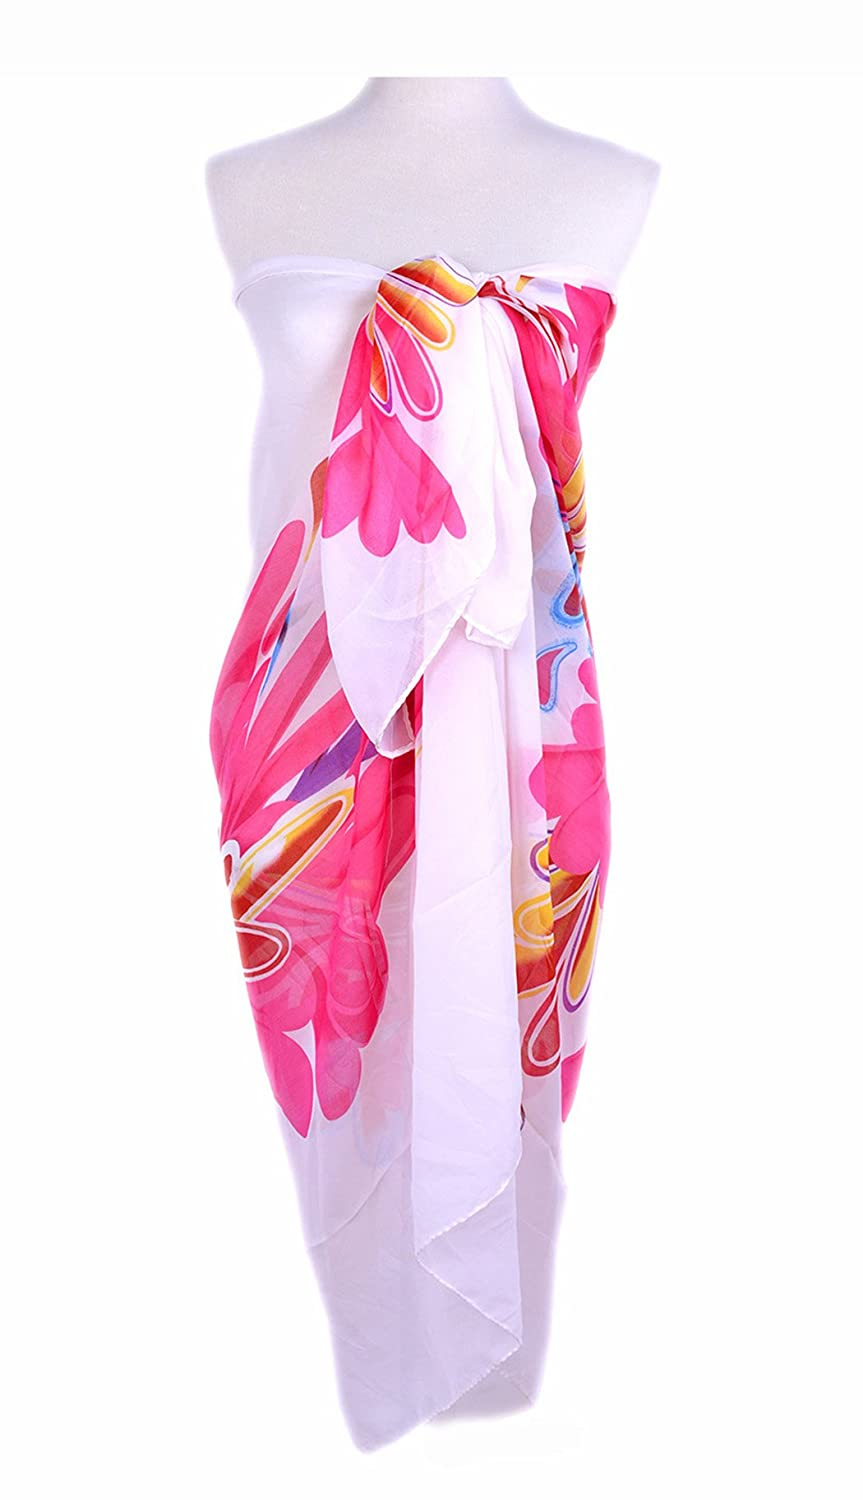 Girl Elegant Shawl Super Lightweight Chiffon Cover up Swimwear Sarong DIY Beach